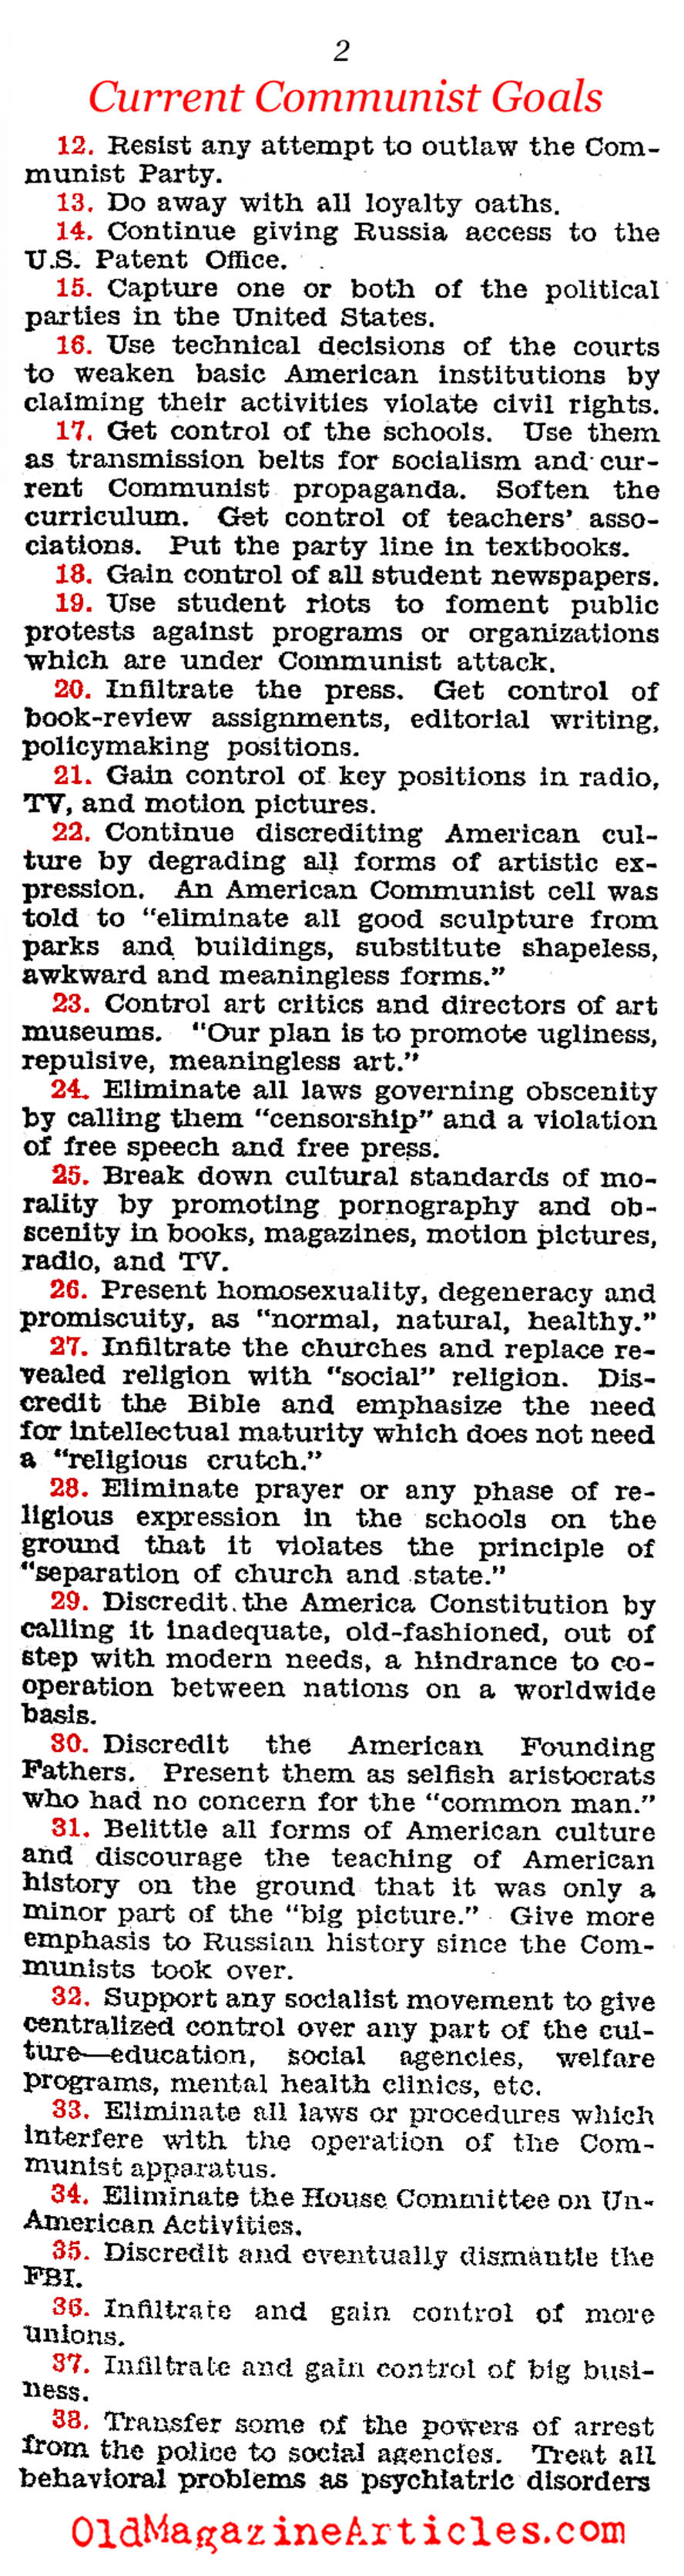 Red Goals For American Society (Congressional Record, 1963)